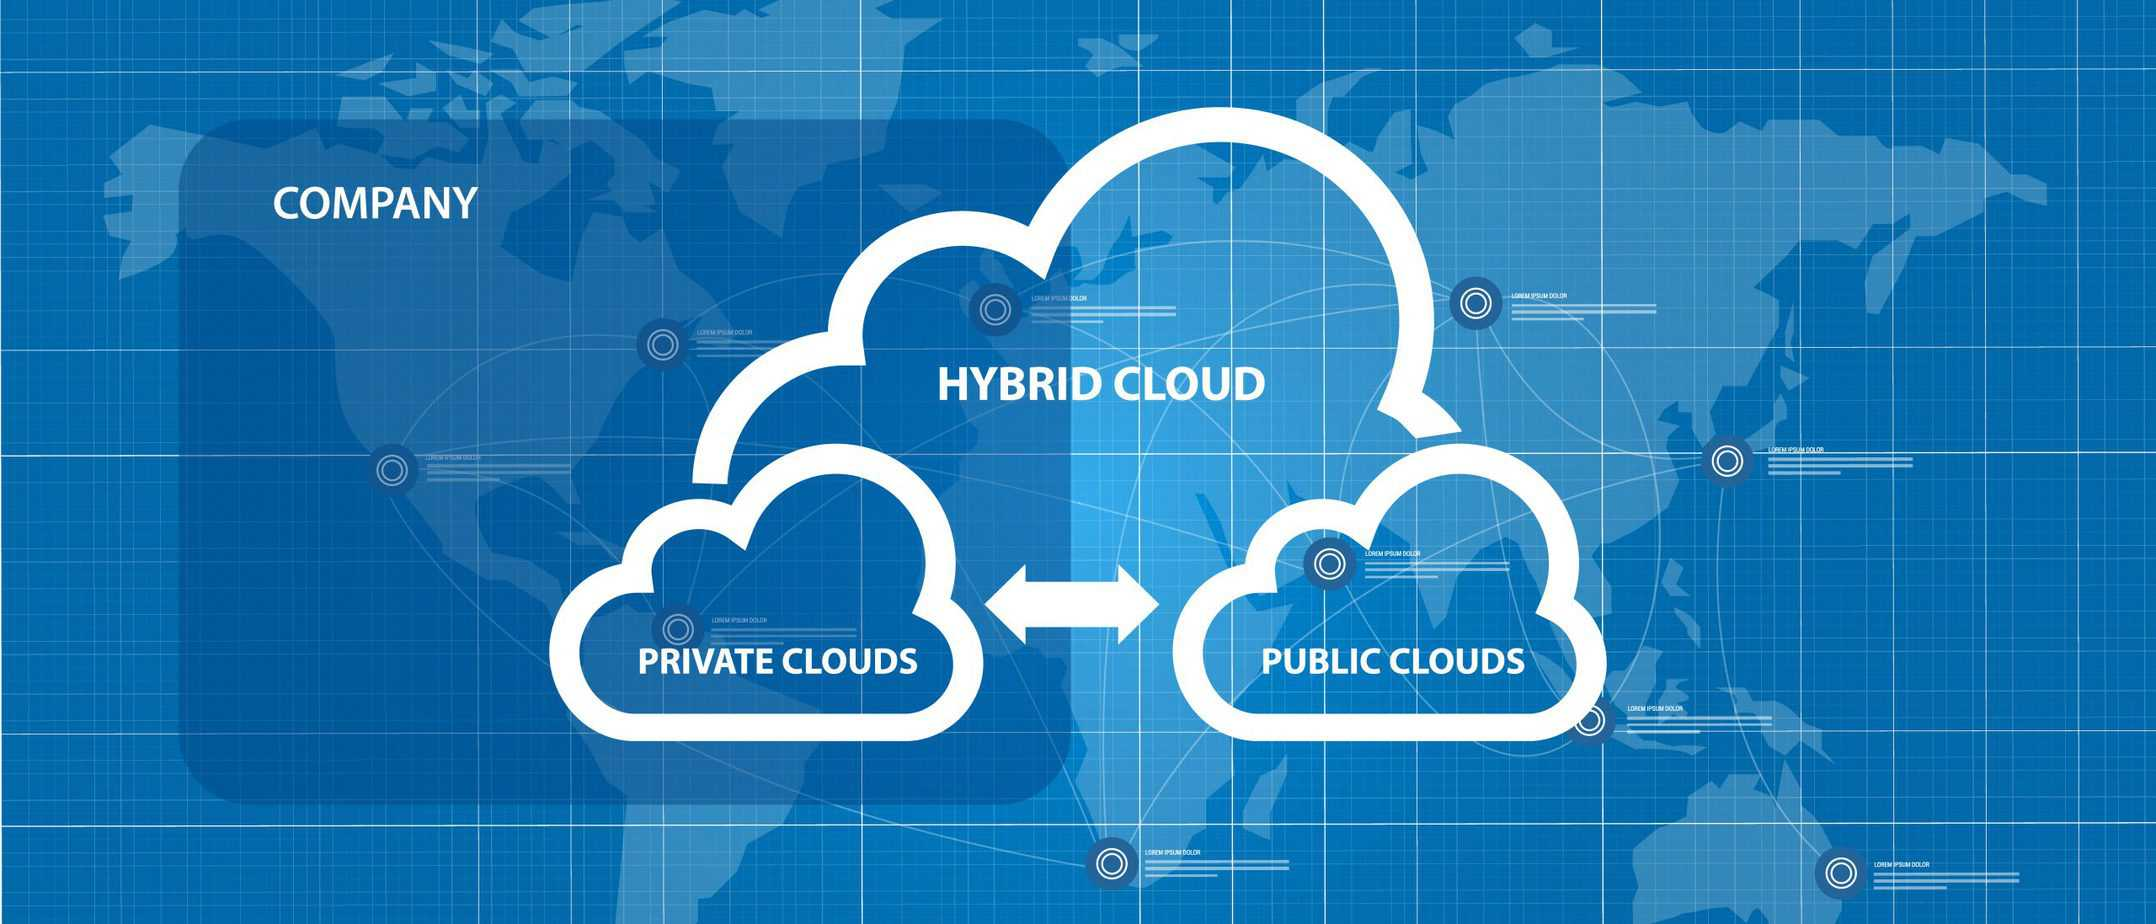 hybrid cloud venn diagram